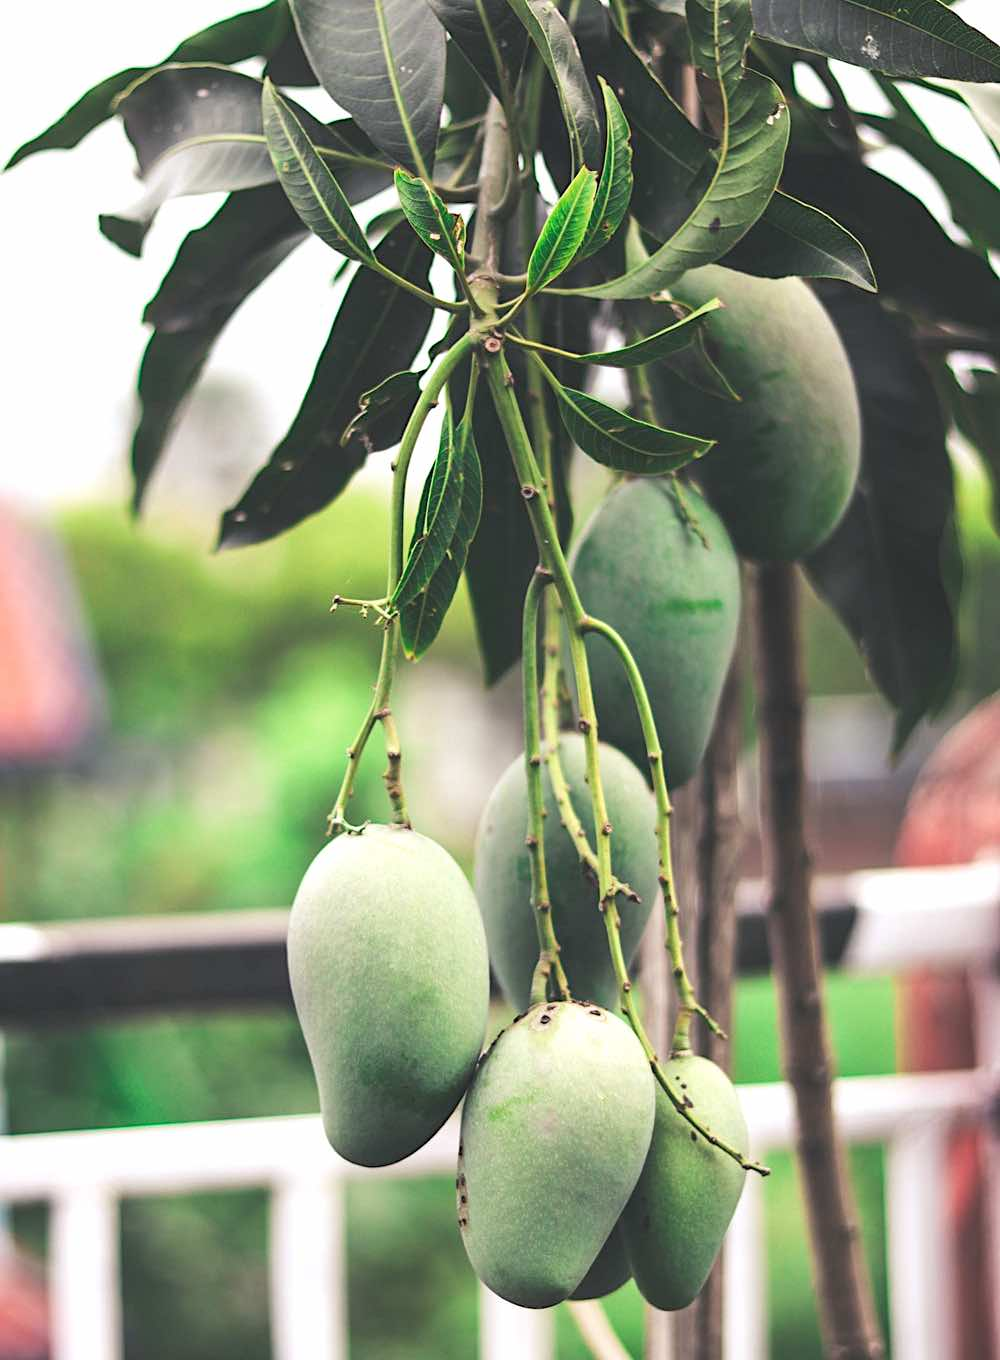 Green Mango Fruits Hanging On Tree | Spring Fruits You Should Plant In Your Garden | what fruits are in season now